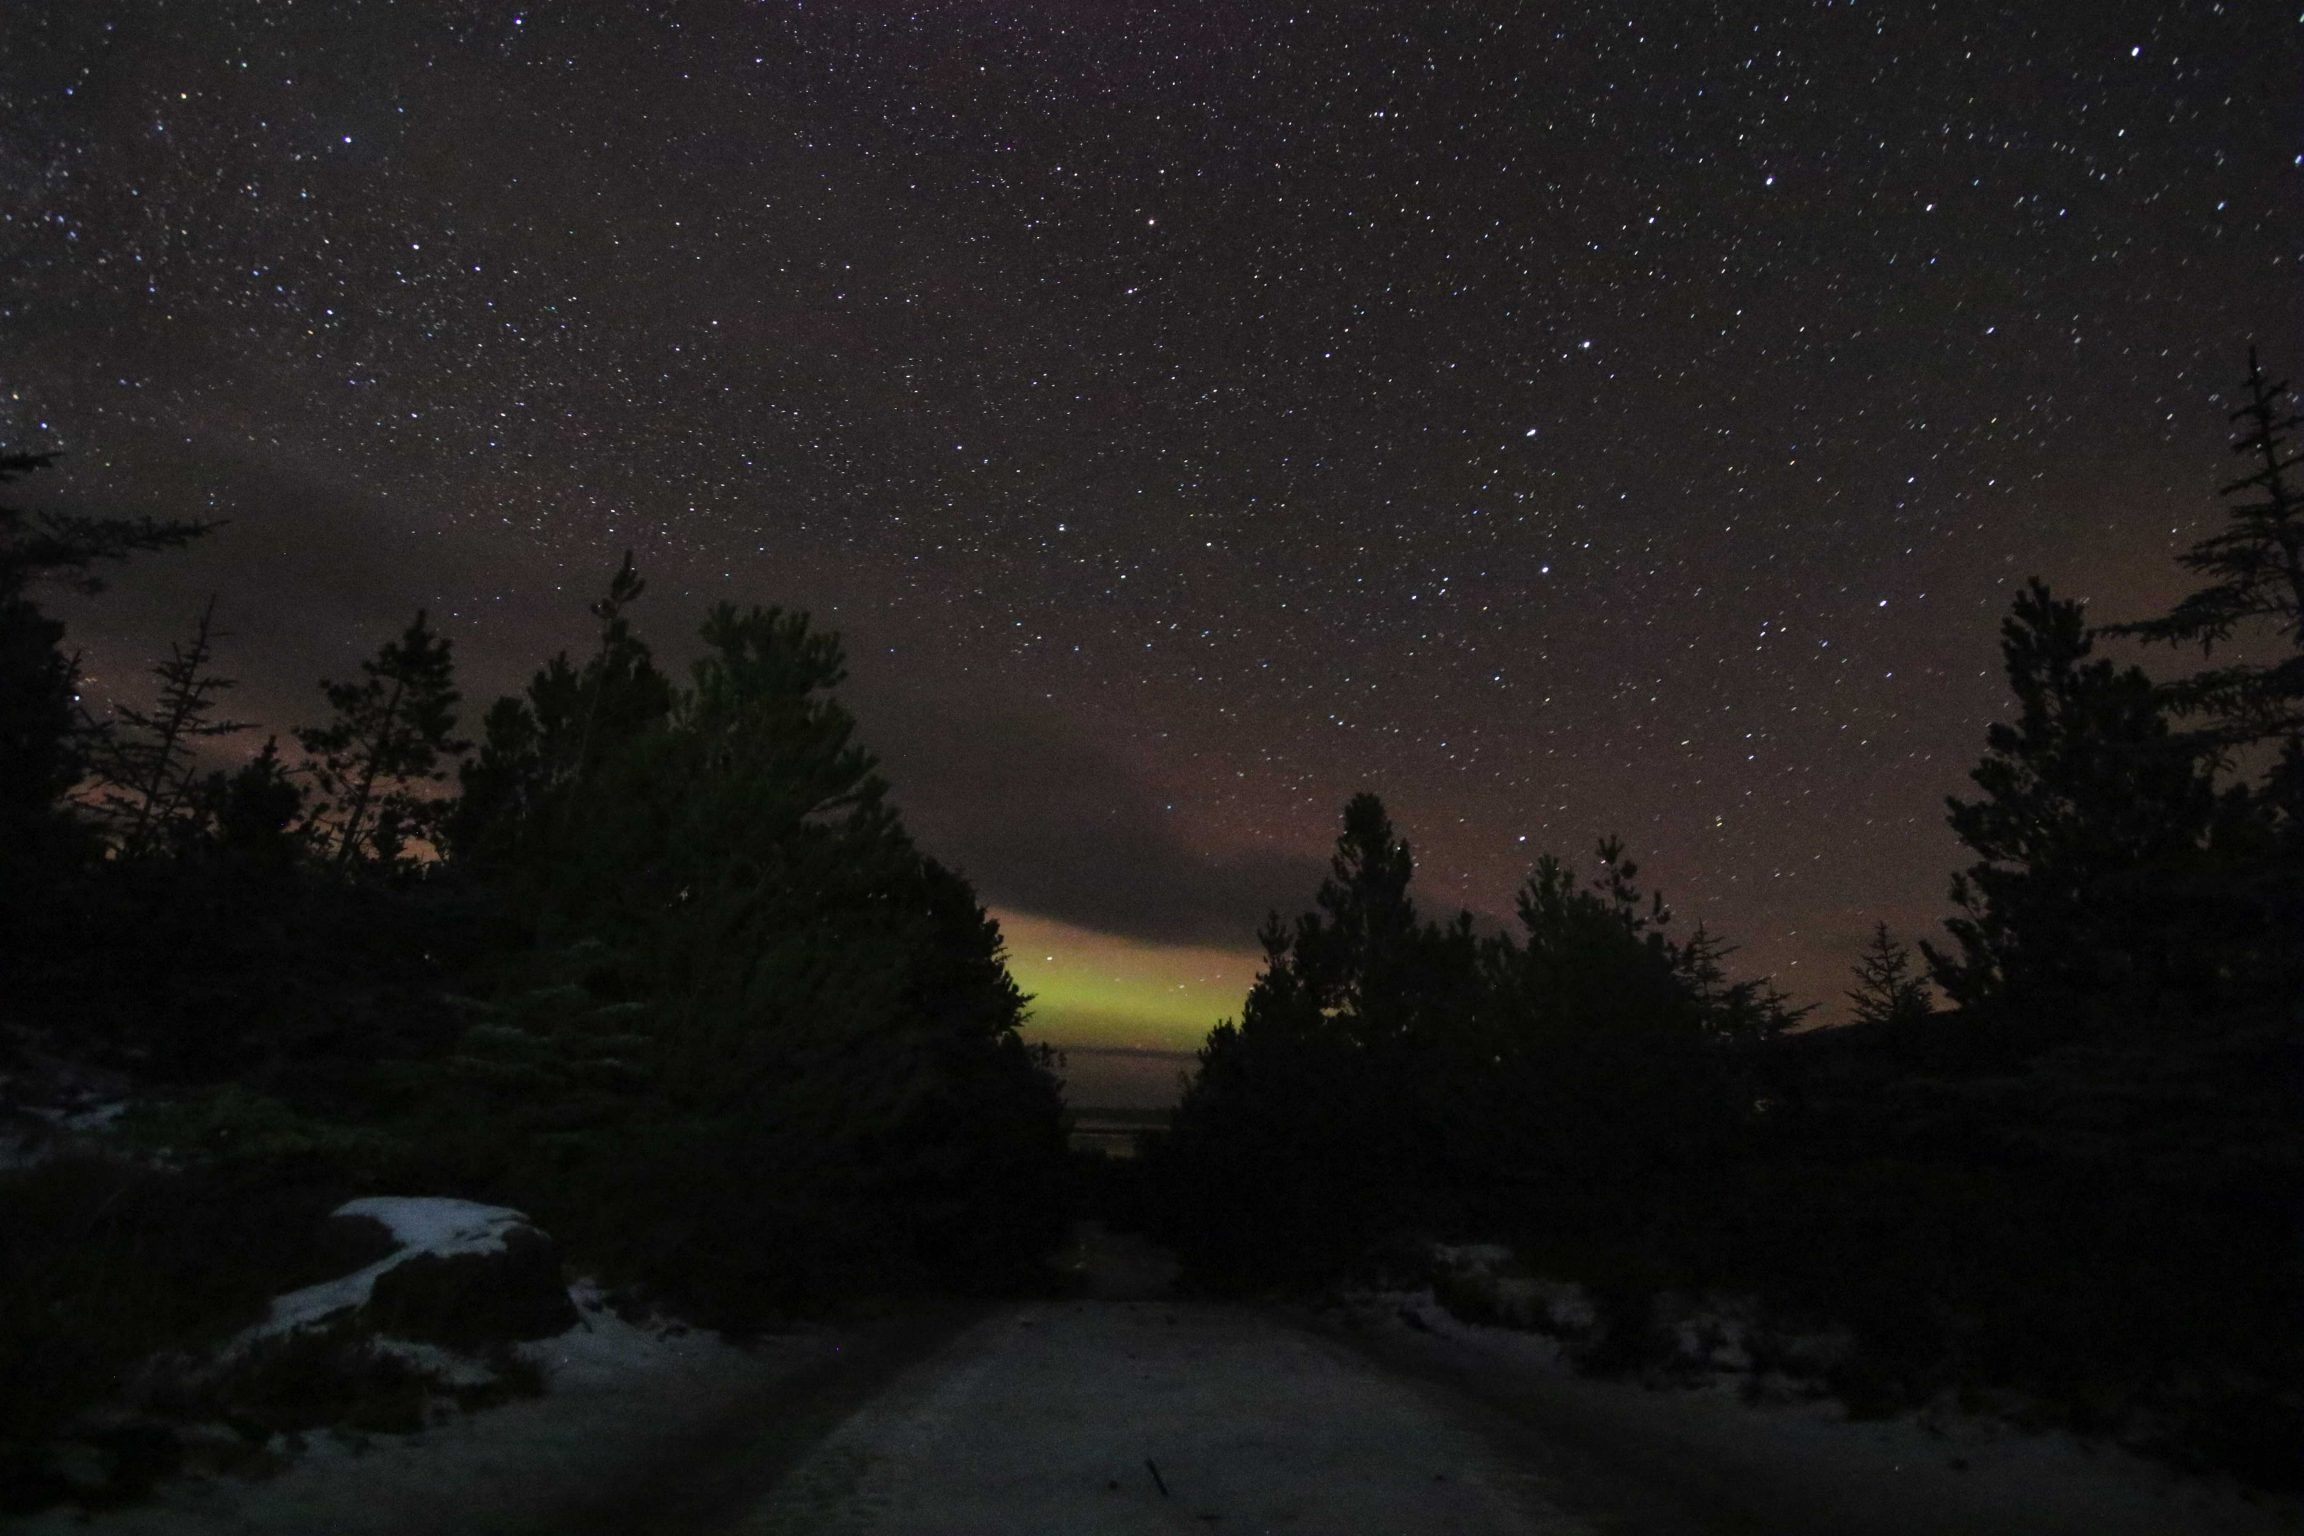 aurora borealis from the forest